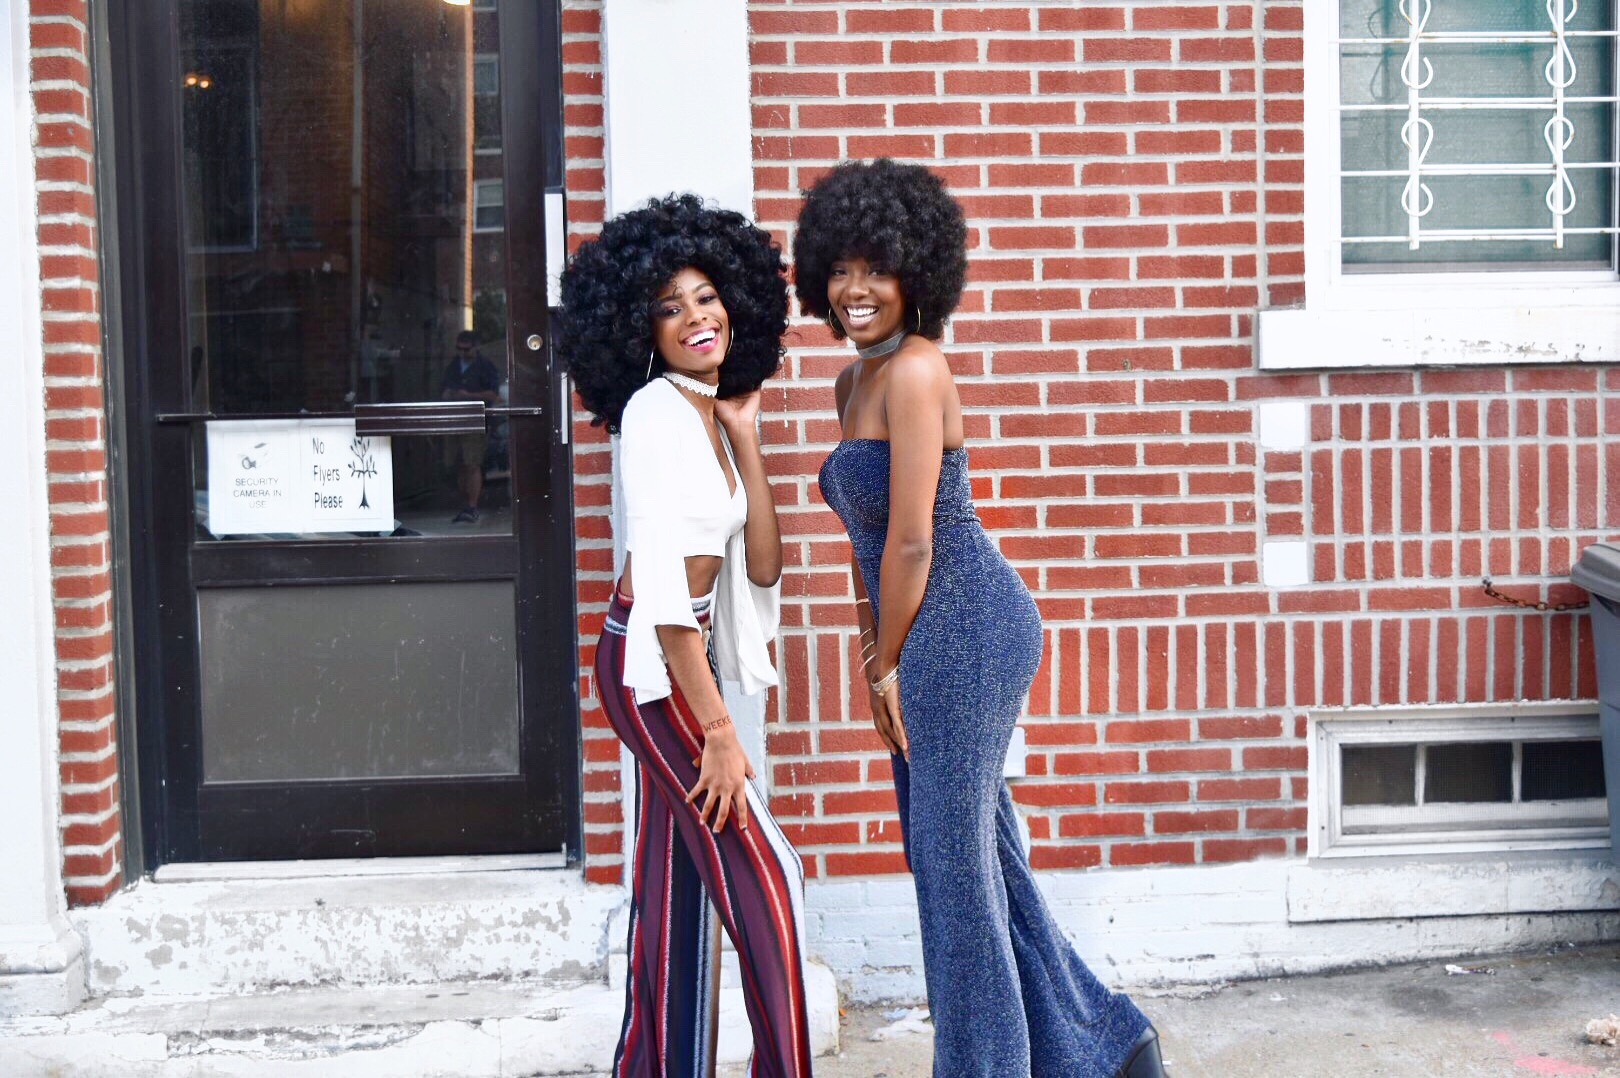 70's Black Fashion Inspired Lookbook: Flare Pants And Afro